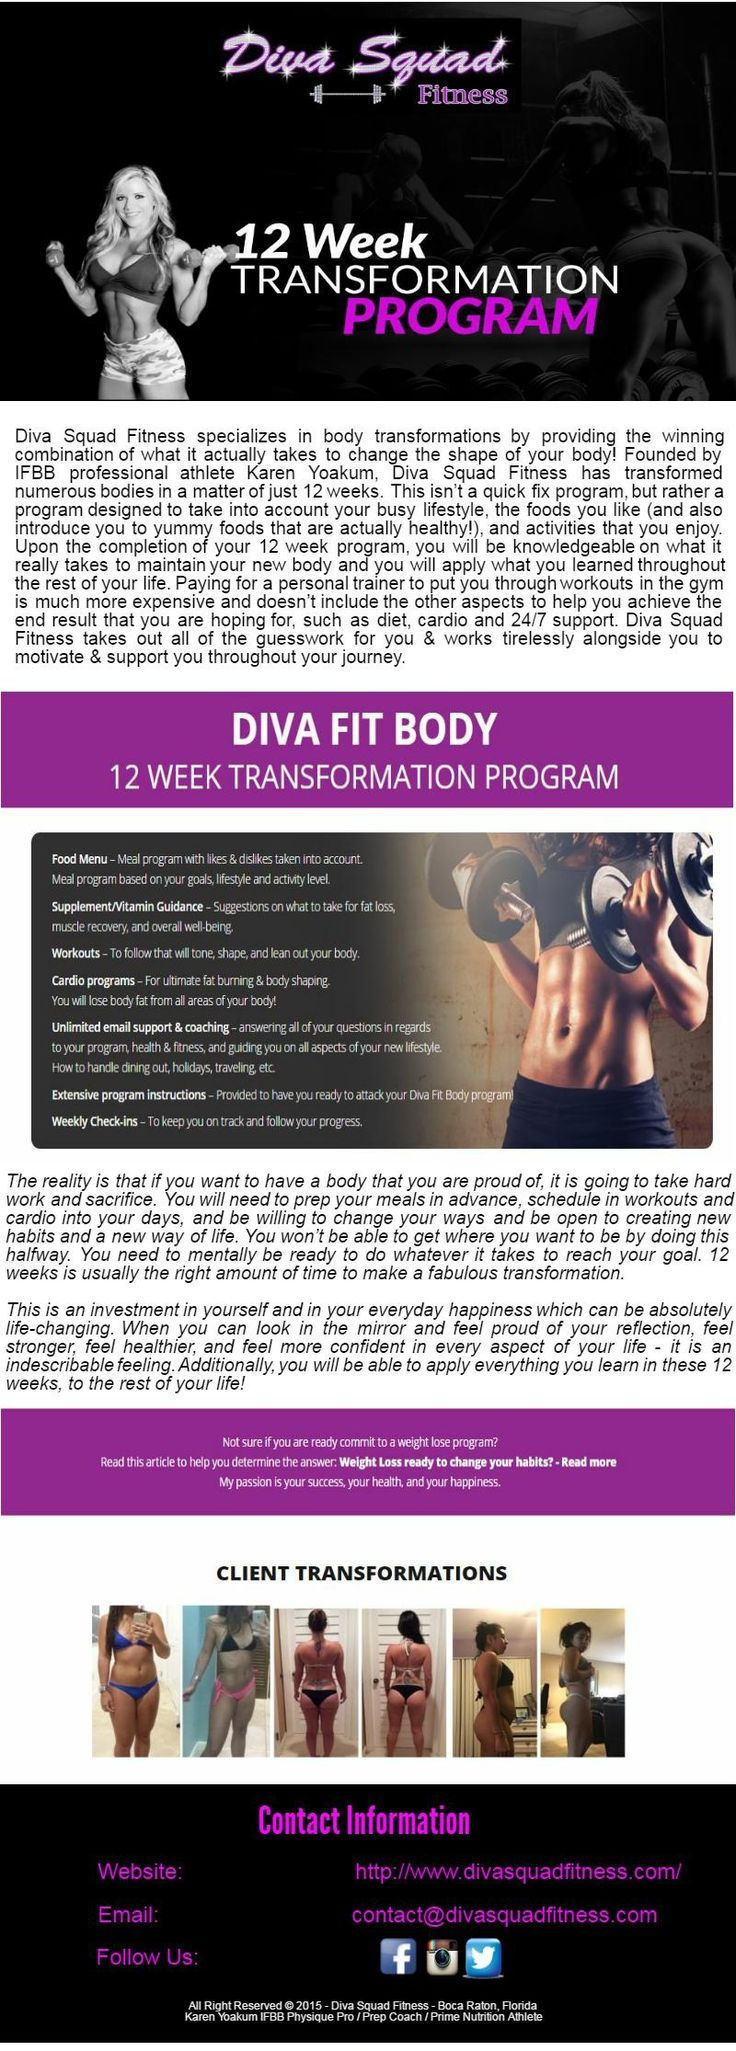 Diva Squad Fitness offers #FitnessPrograms to local, national & global customers for competition preparation & also offers coaching programs for people who interested in non-contest 12 week body transformations. Customers are supplied with meal programs, workout programs, cardio programs and supplement programs which give all the instruments required to acquire one's greatest ever body. Diva Squad Fitness coaches NPC/IFBB Bikini, Figure, and Women's Physique competitors.